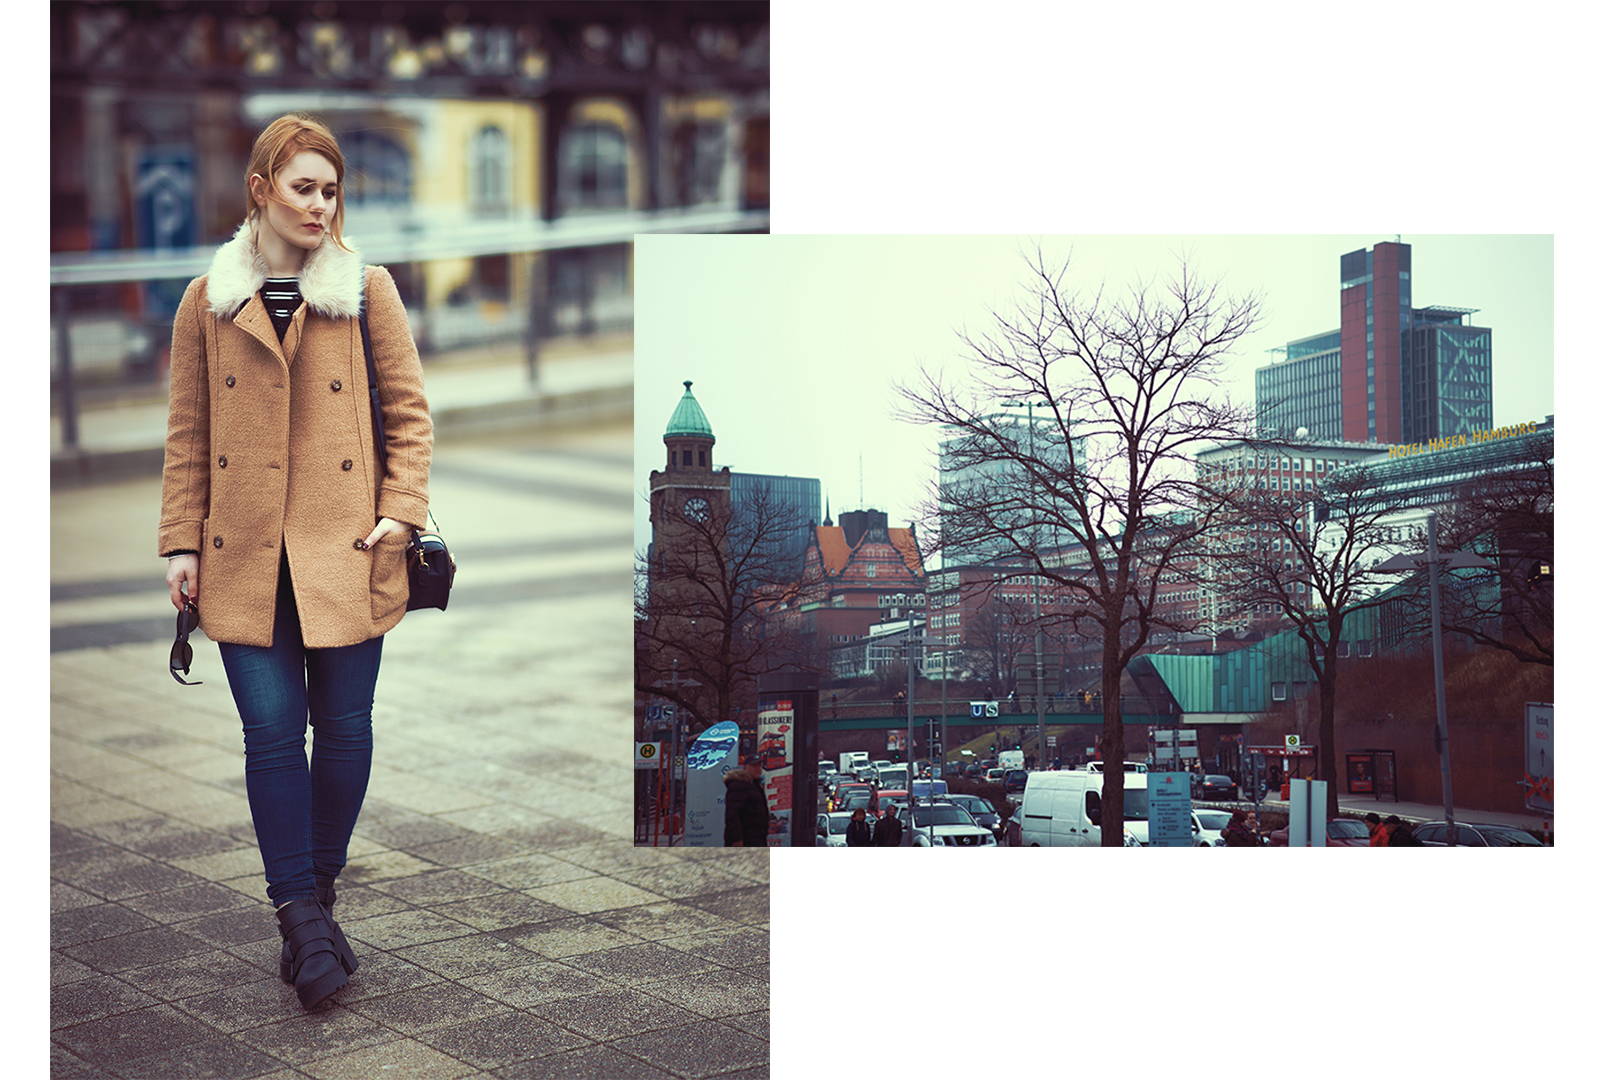 Christina Key is wearing a perfect winter outfit in Hamburg